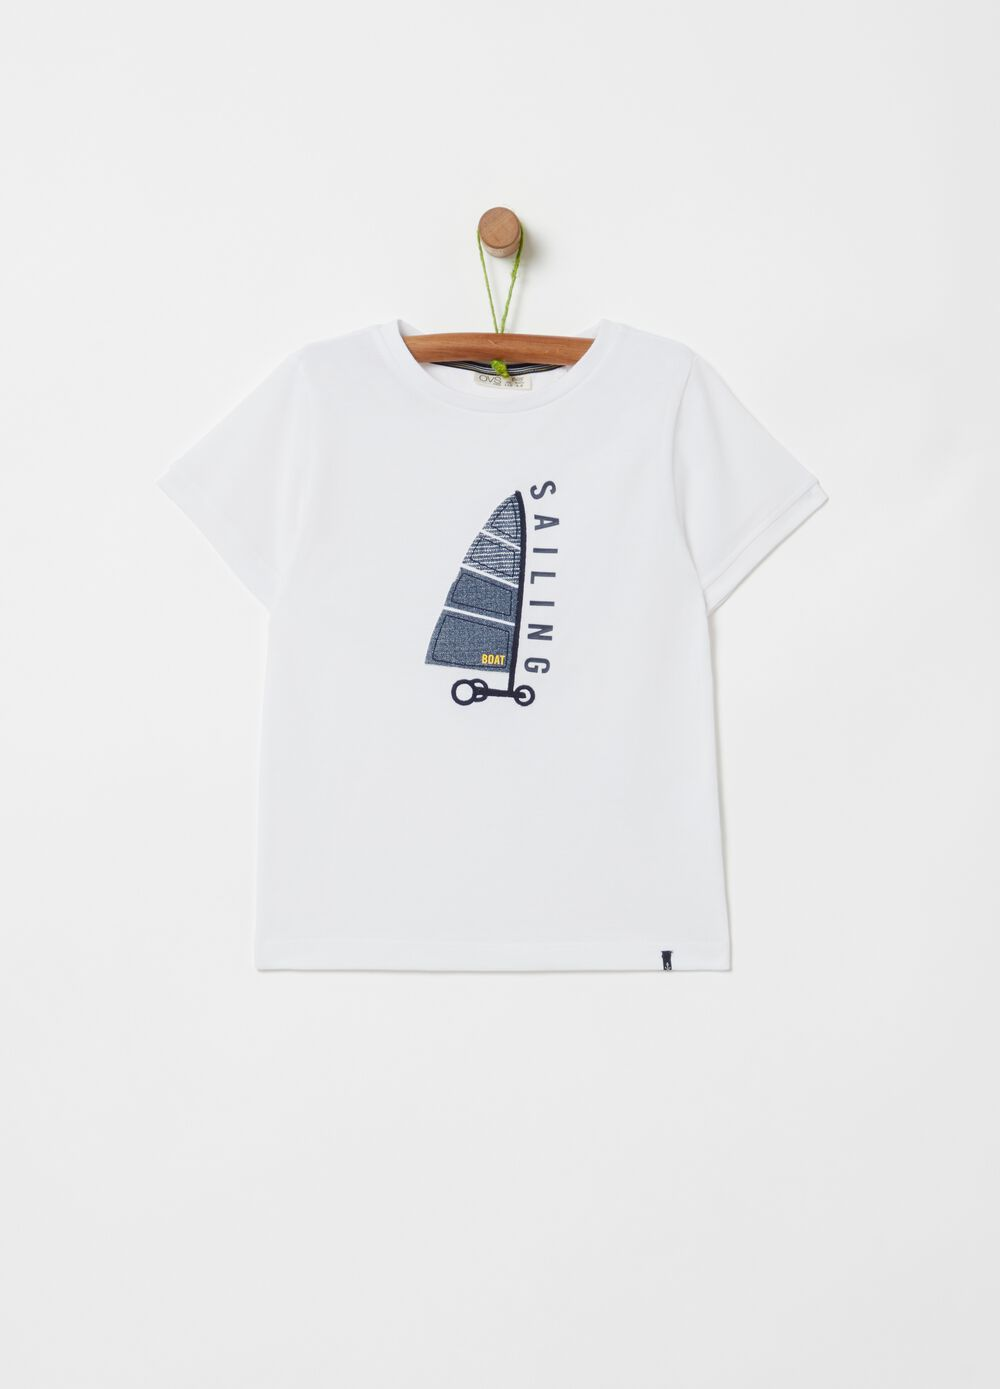 100% organic cotton T-shirt with sailing boat